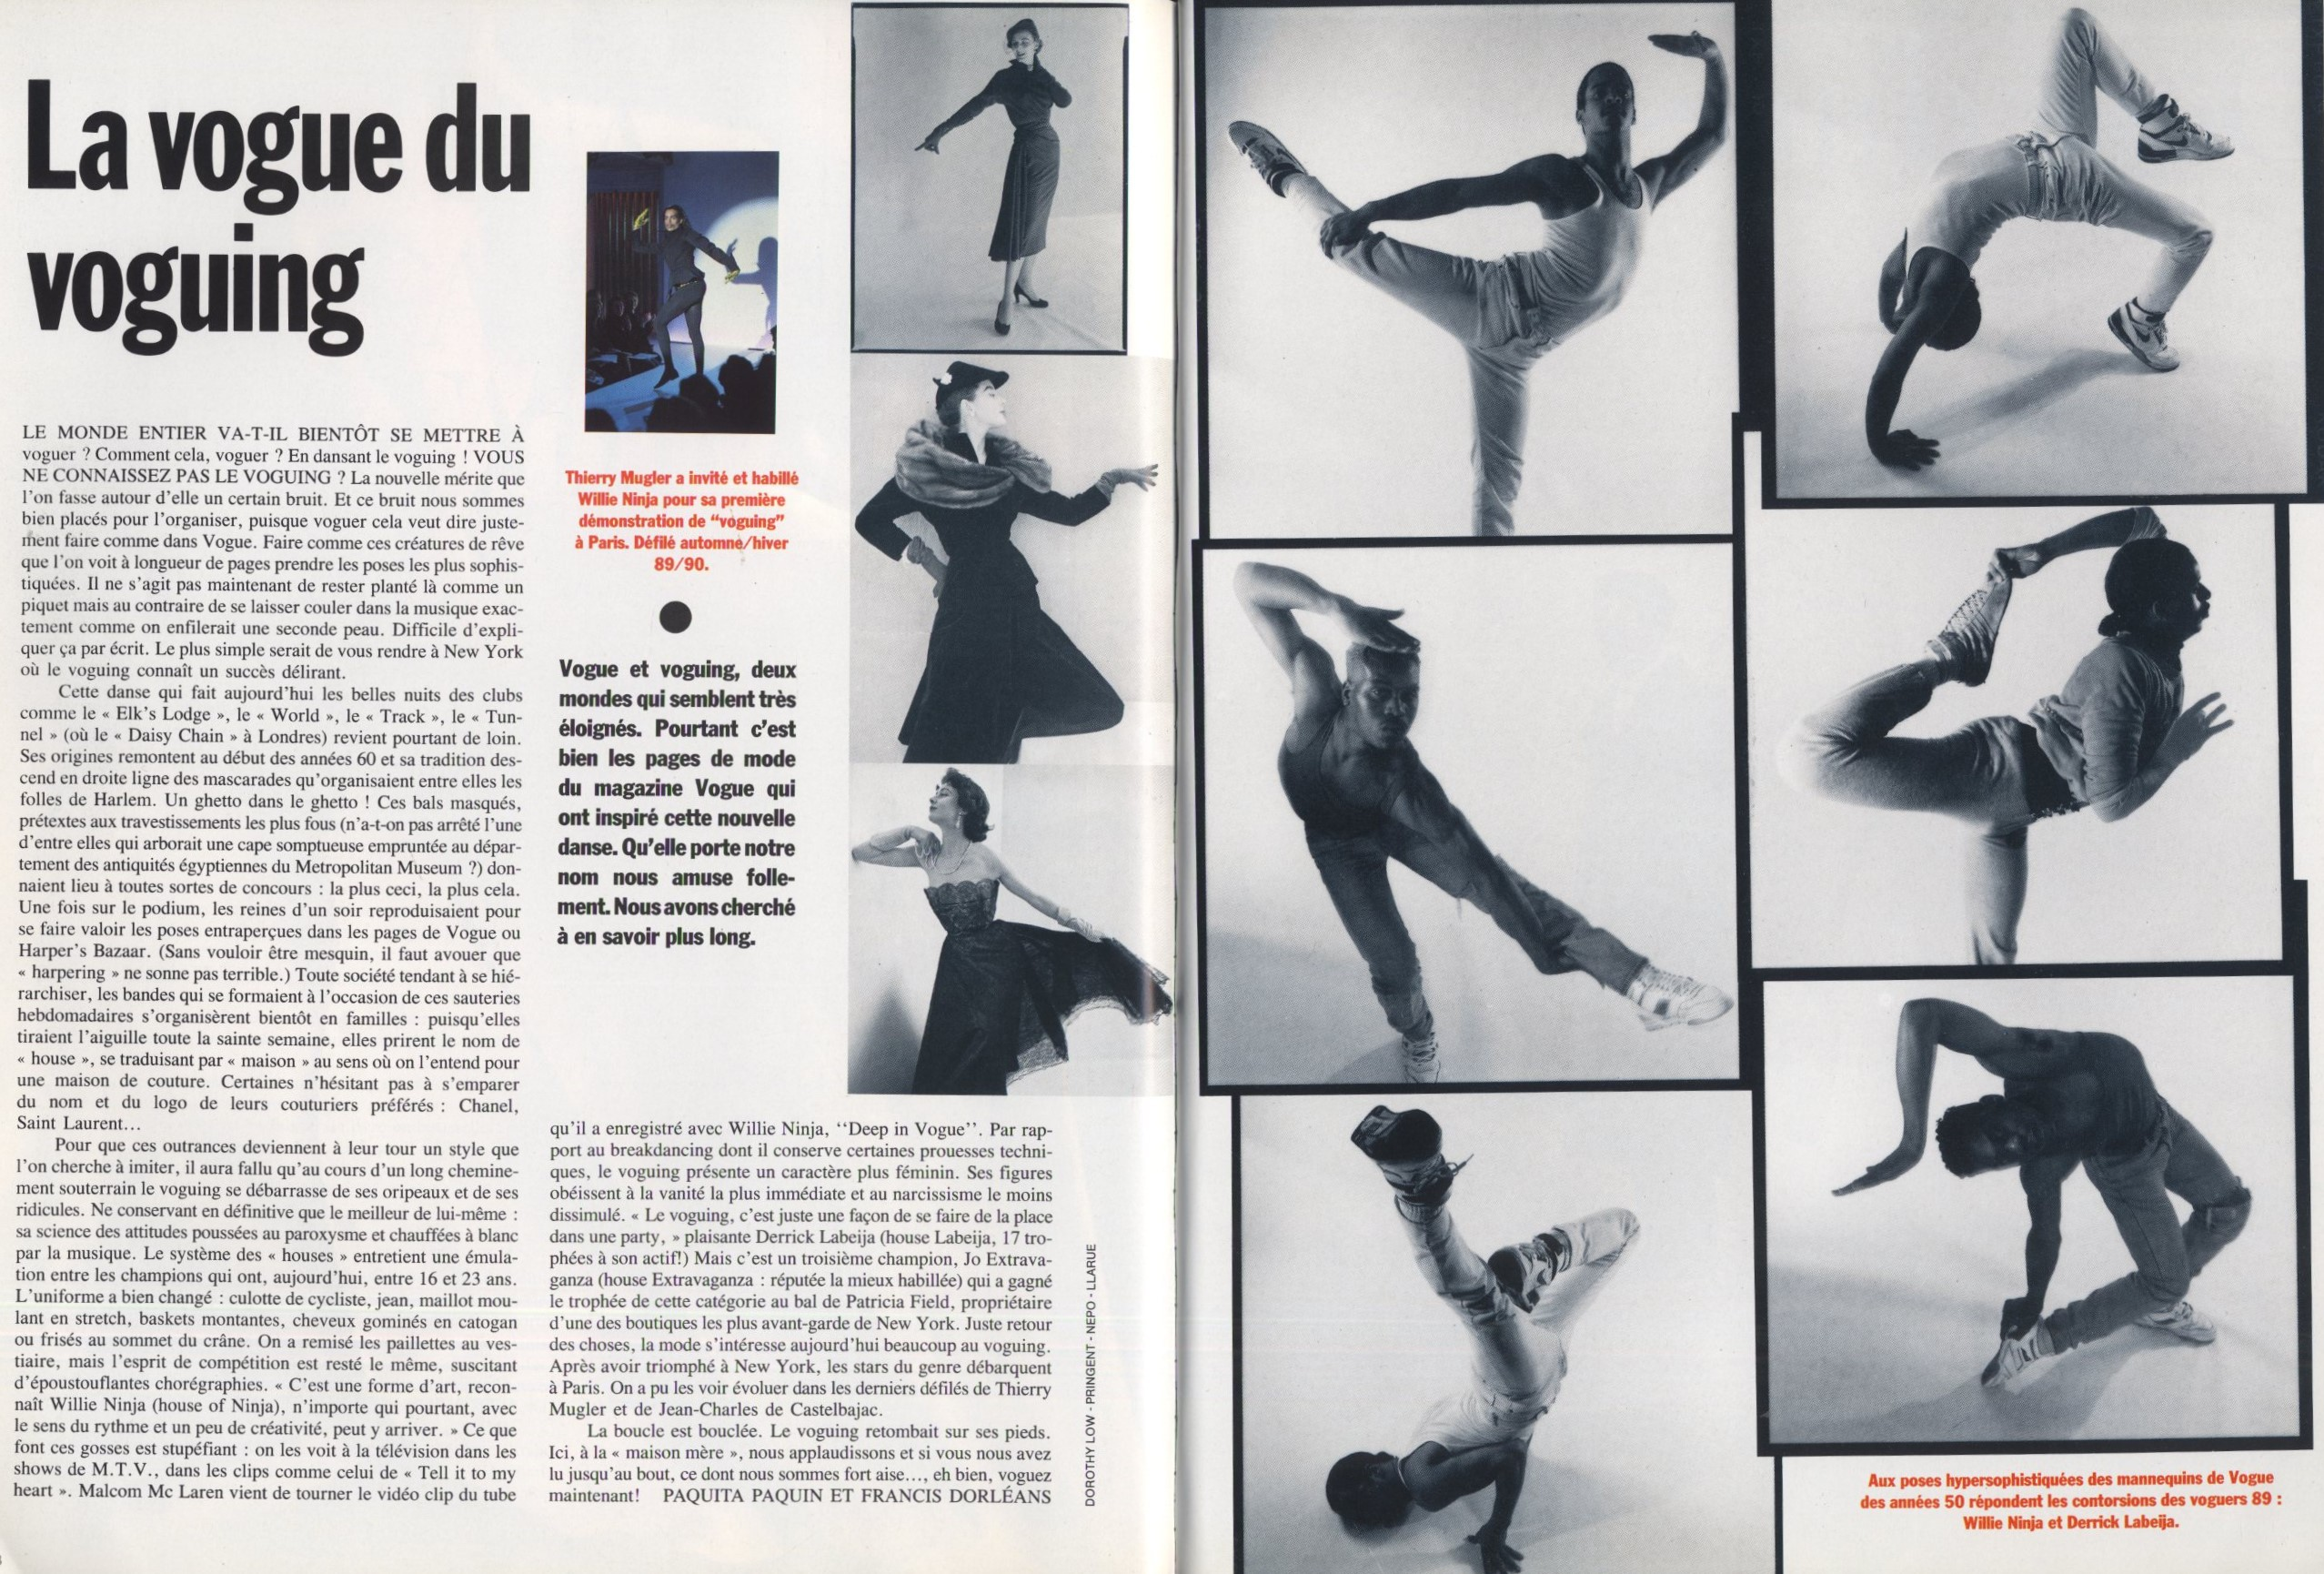 LA VOGUE DU VOGUING | VOGUE PARIS N.696 | MAY 1989